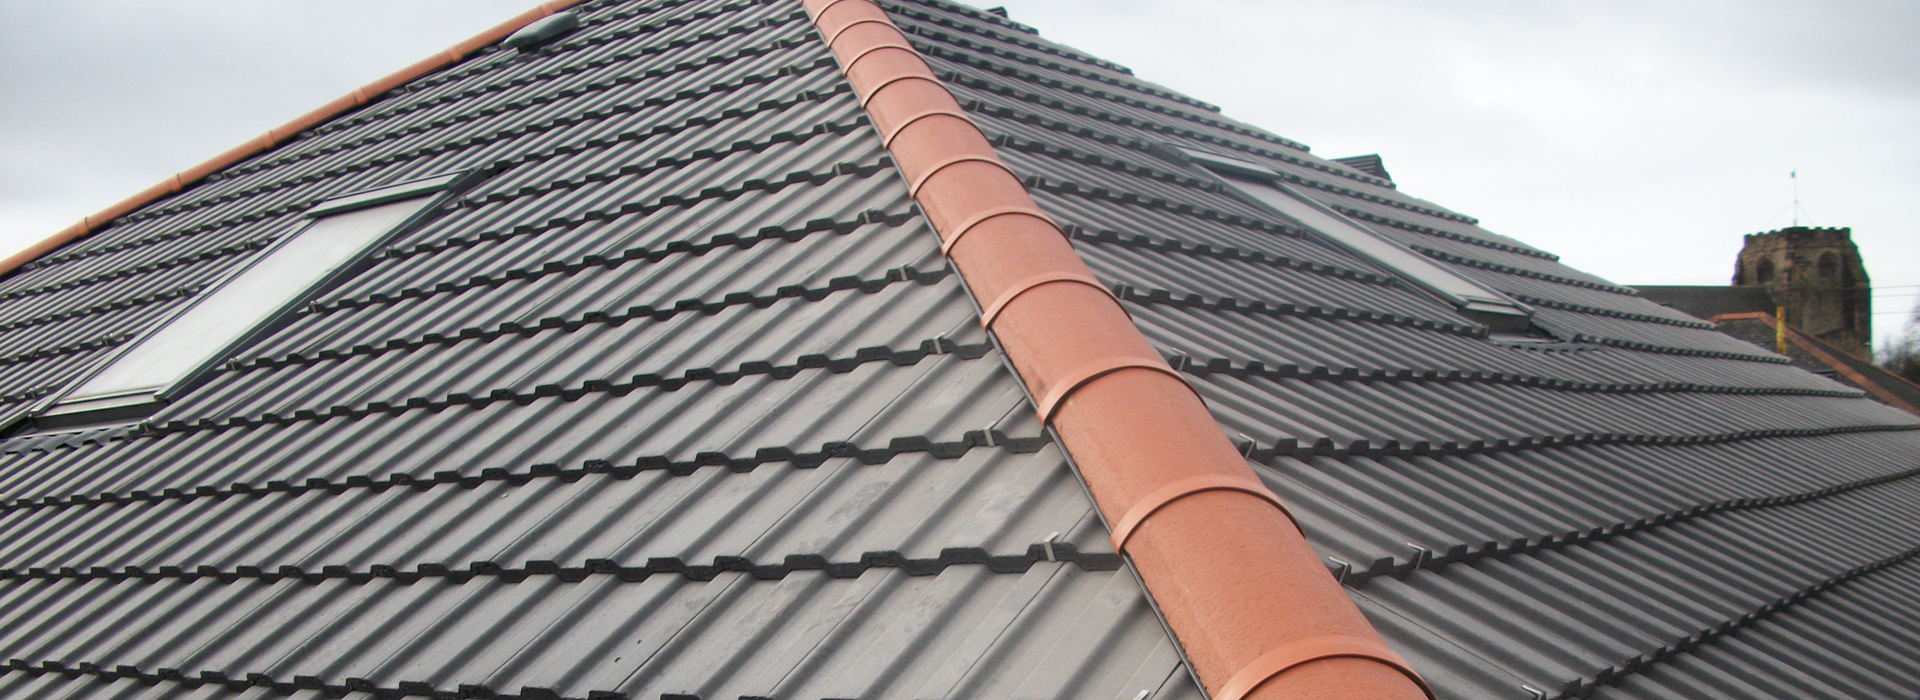 experienced roofing companies